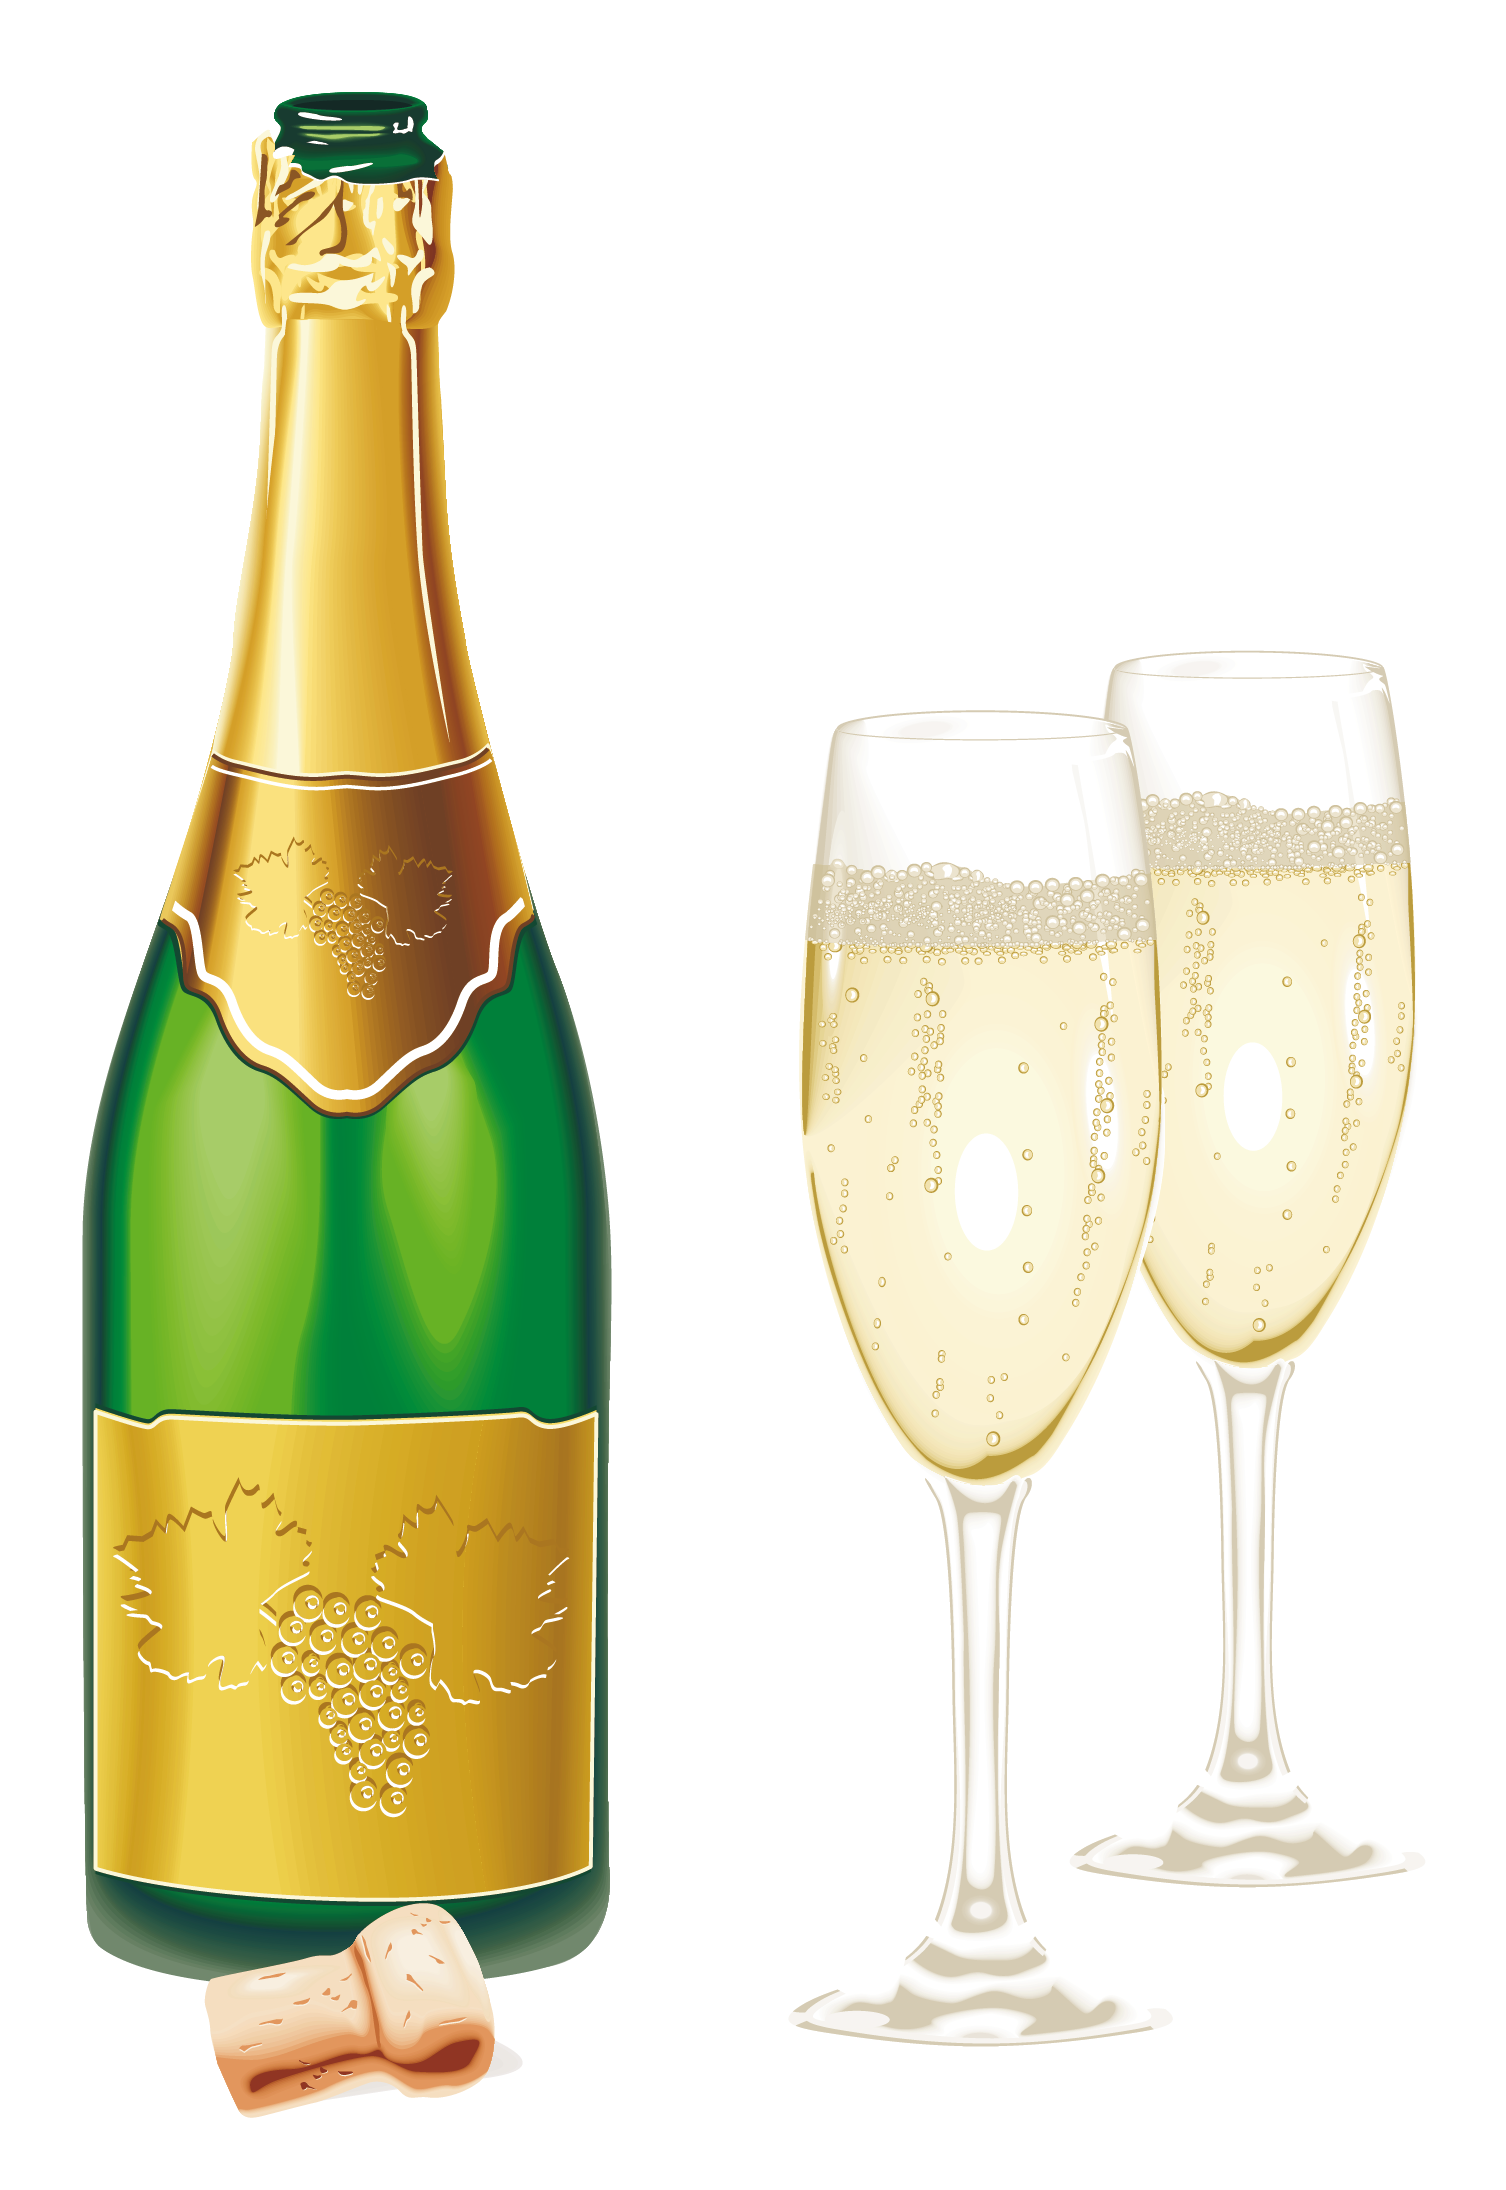 graphic free download New year open with. Champagne clipart glassware.